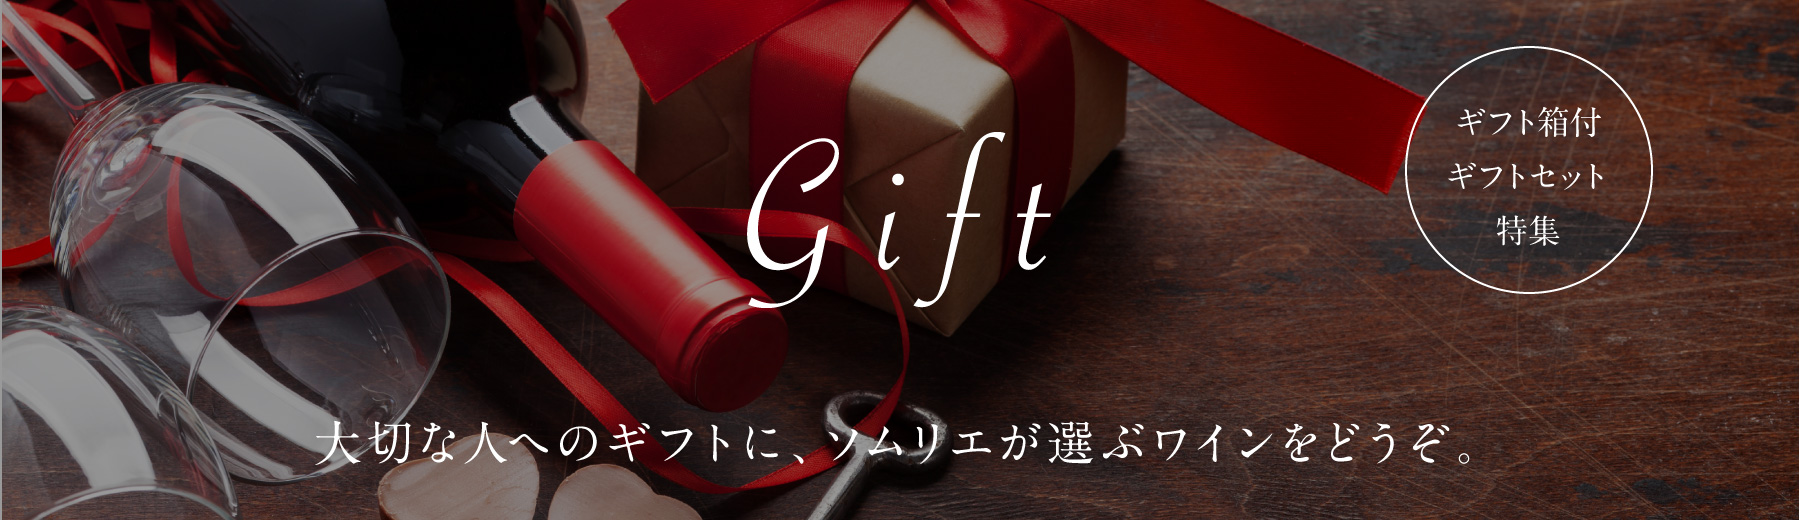 gift ギフトセット特集